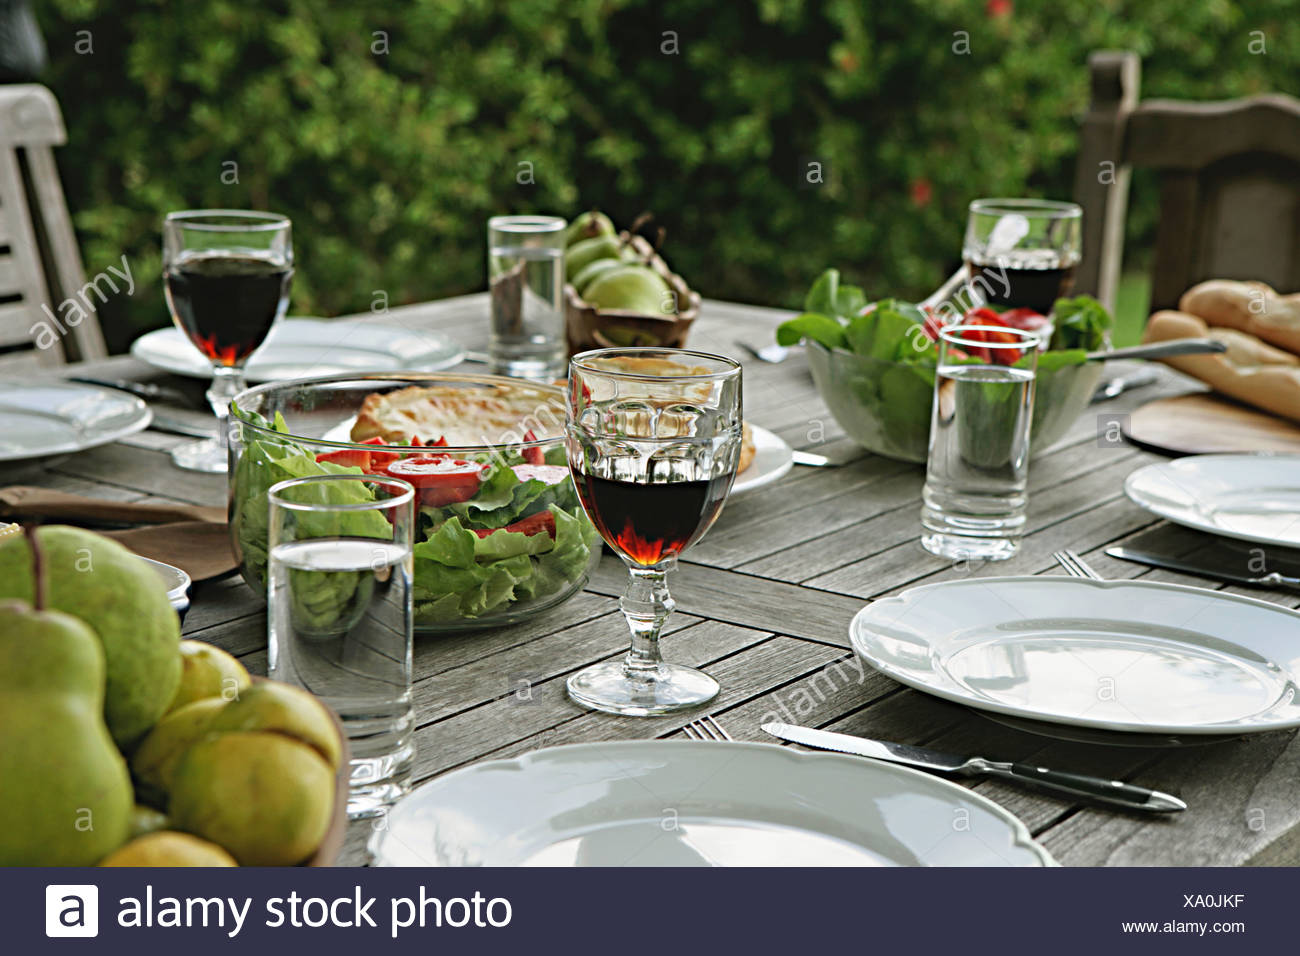 Al fresco dining - Stock Image